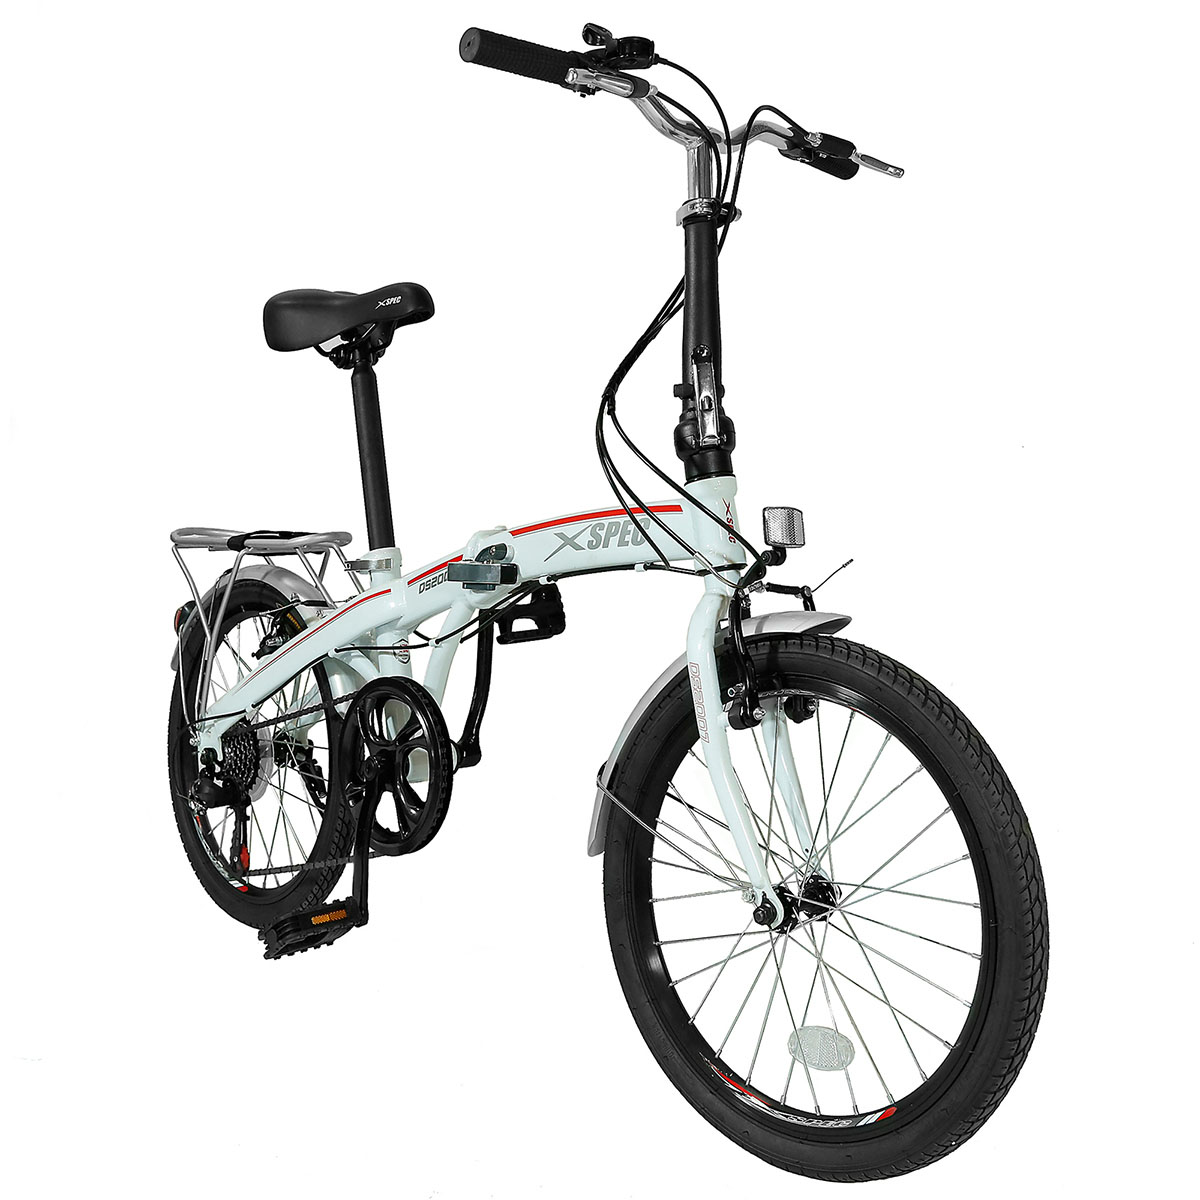 "Xspec 20"" 7 Speed City Folding Compact Bike Bicycle Urban Commuter Shimano, Black"